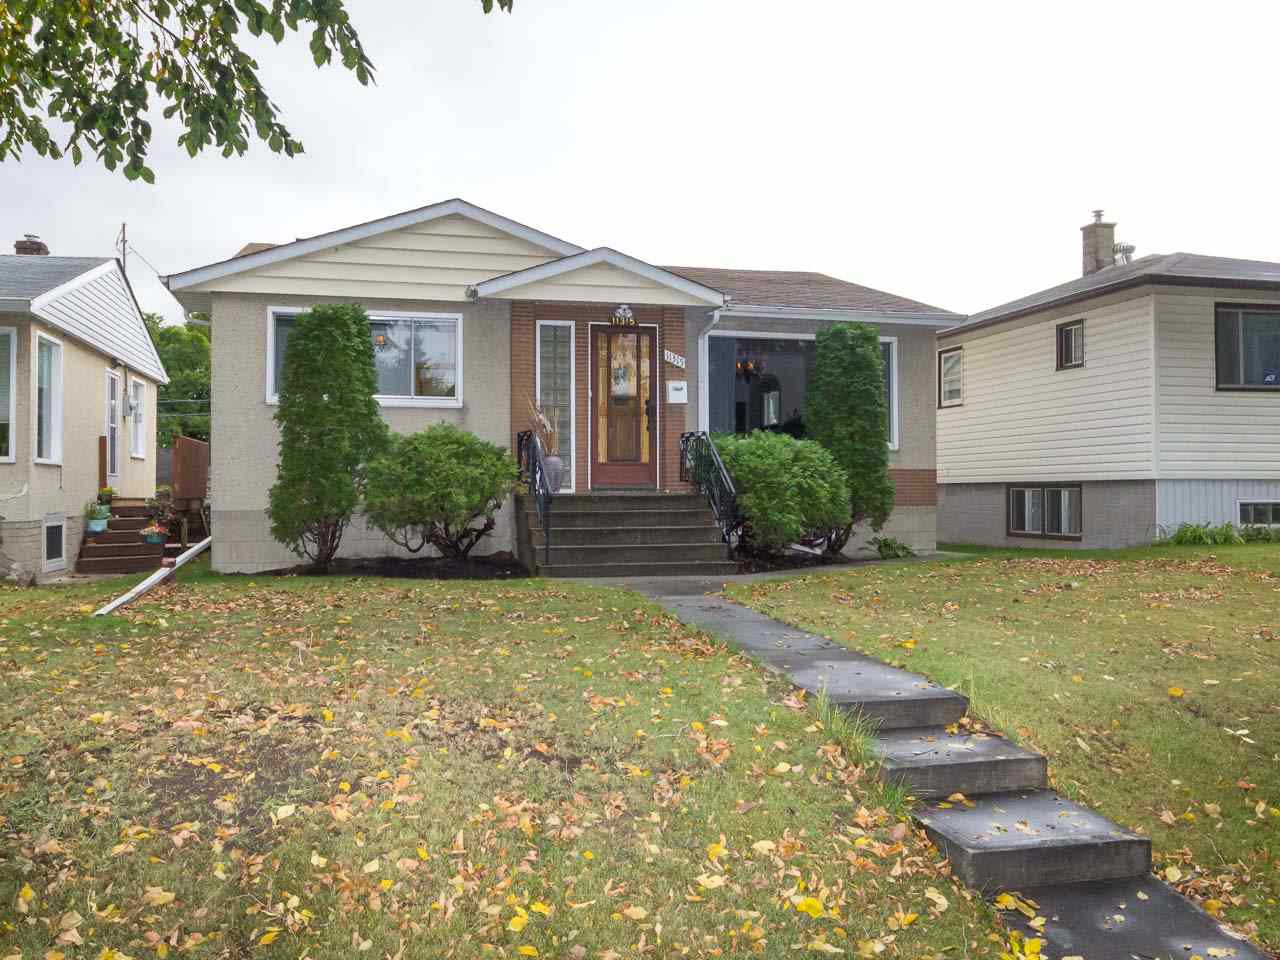 Main Photo: 11315 52 Street in Edmonton: Zone 09 House for sale : MLS® # E4082078